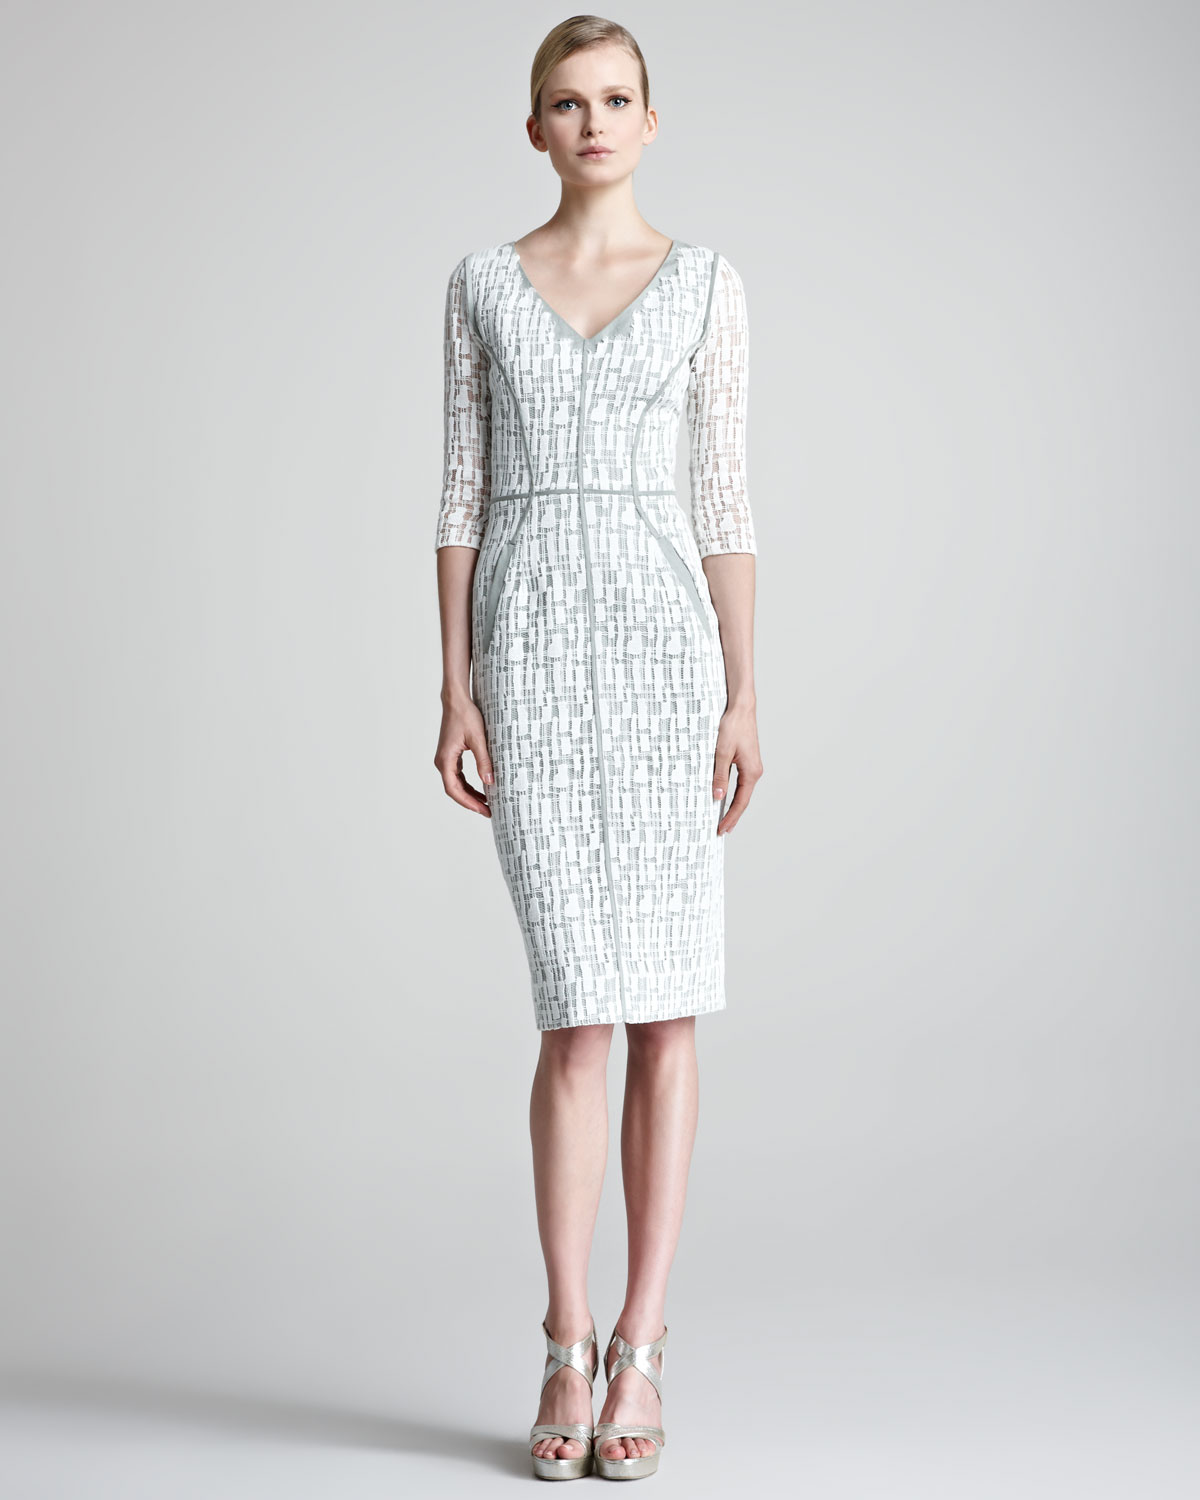 Lela Rose Jigsaw Lace Dress In Gray Lyst